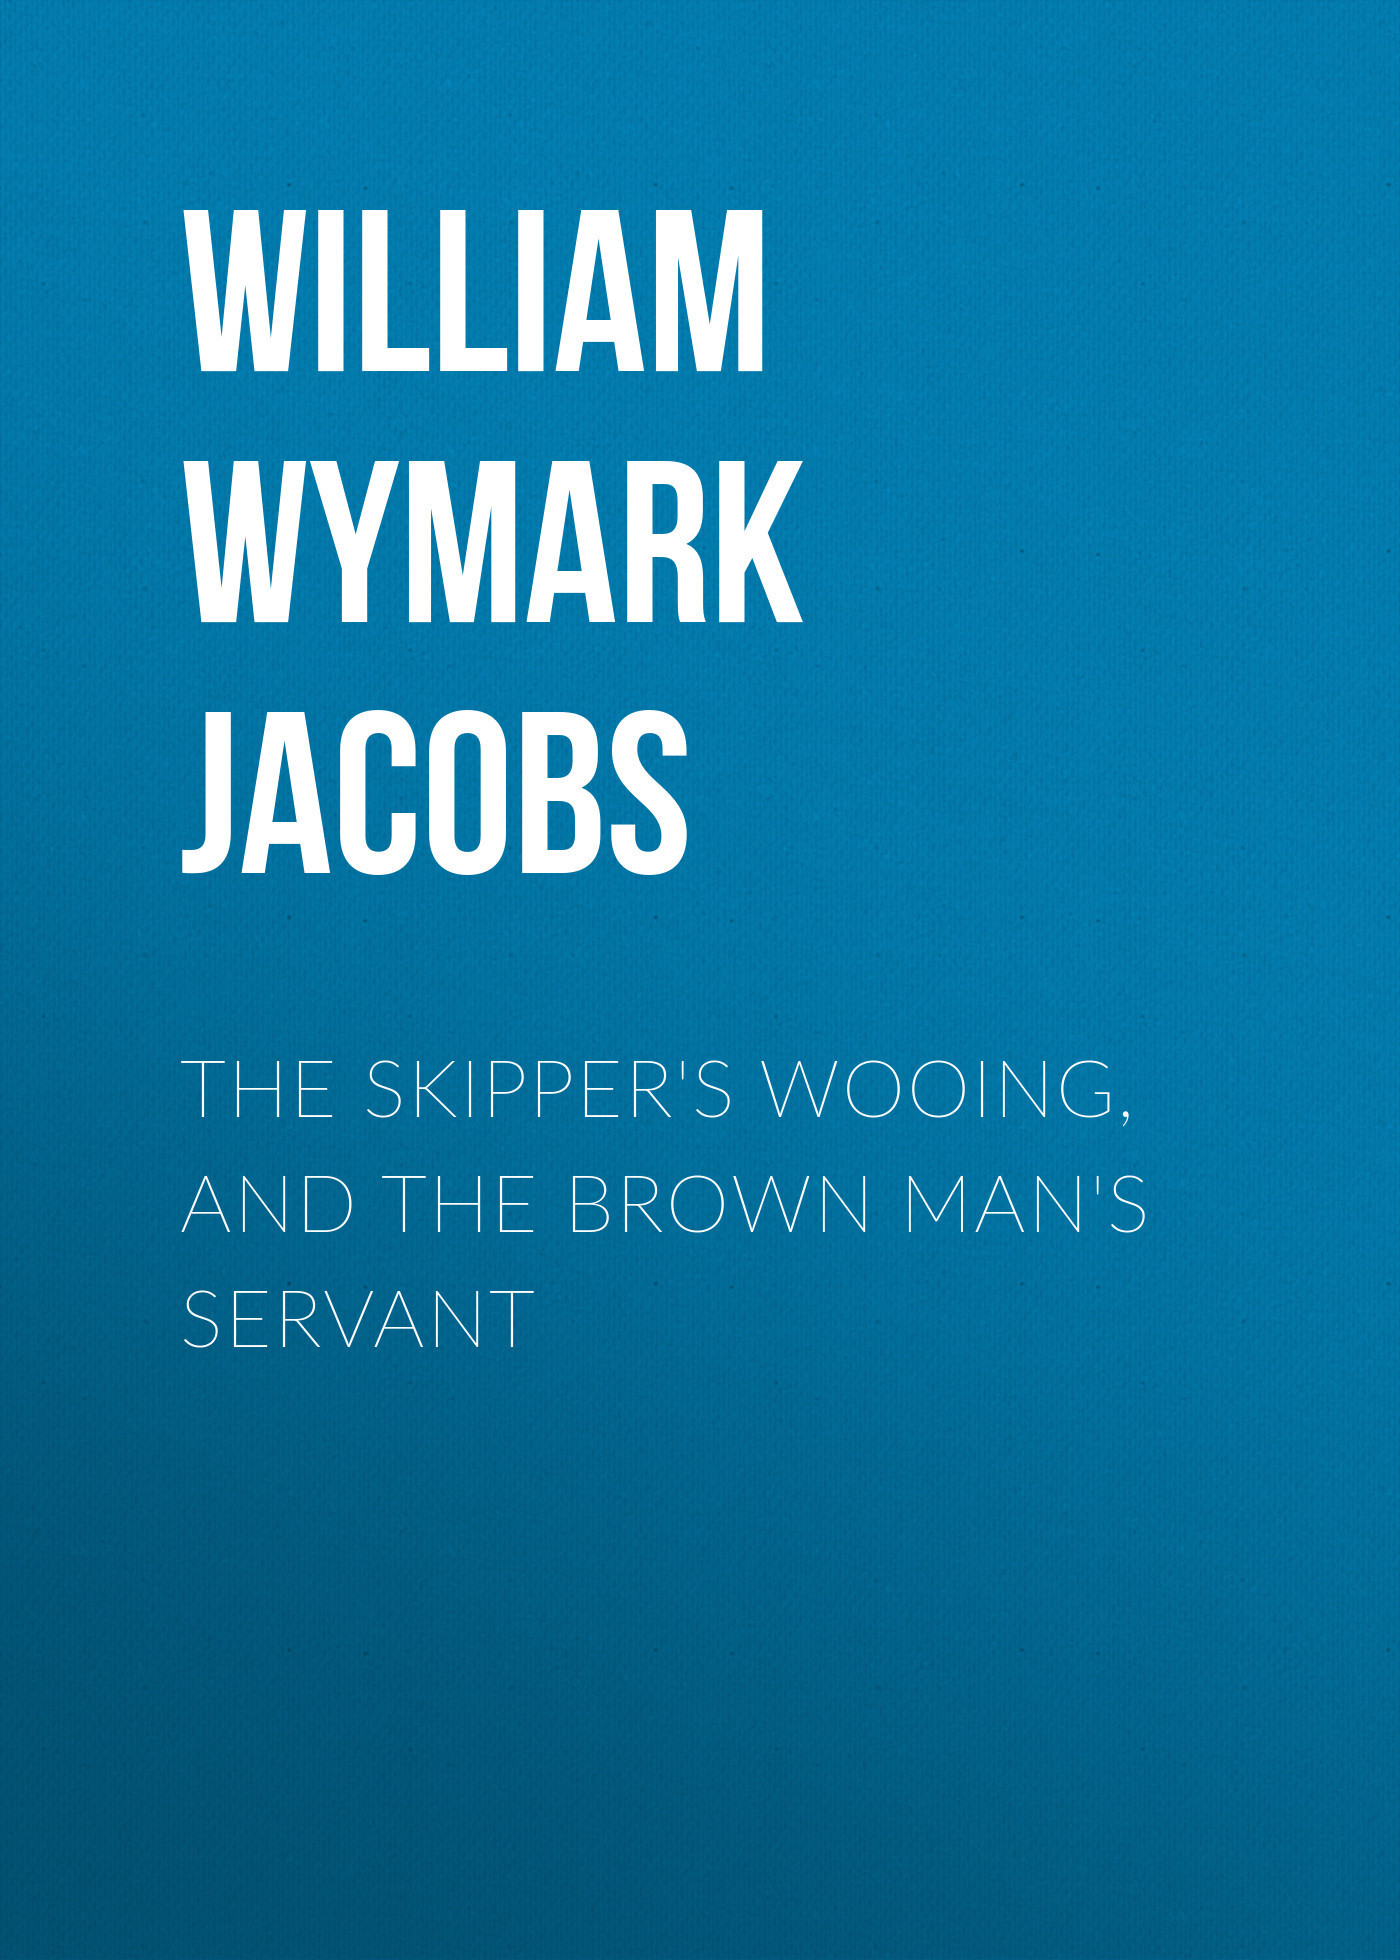 William Wymark Jacobs The Skipper's Wooing, and The Brown Man's Servant